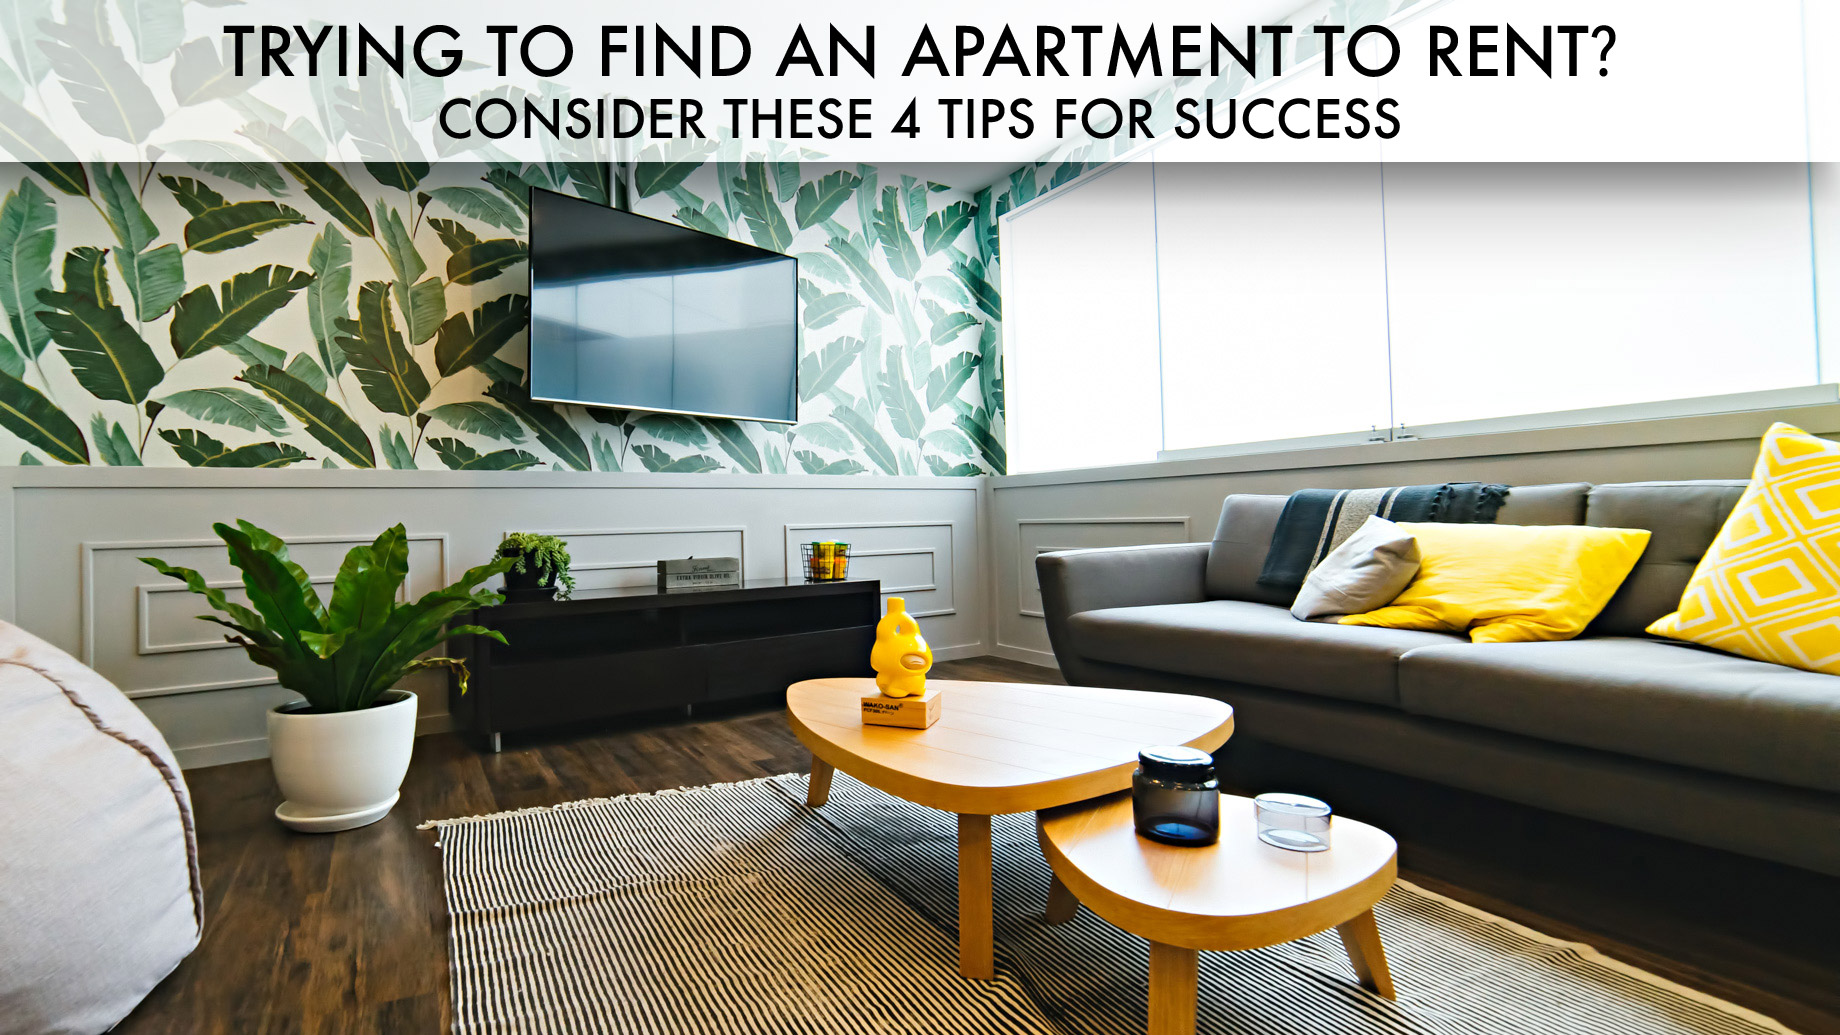 Trying to Find an Apartment to Rent? - Consider These 4 Tips For Success